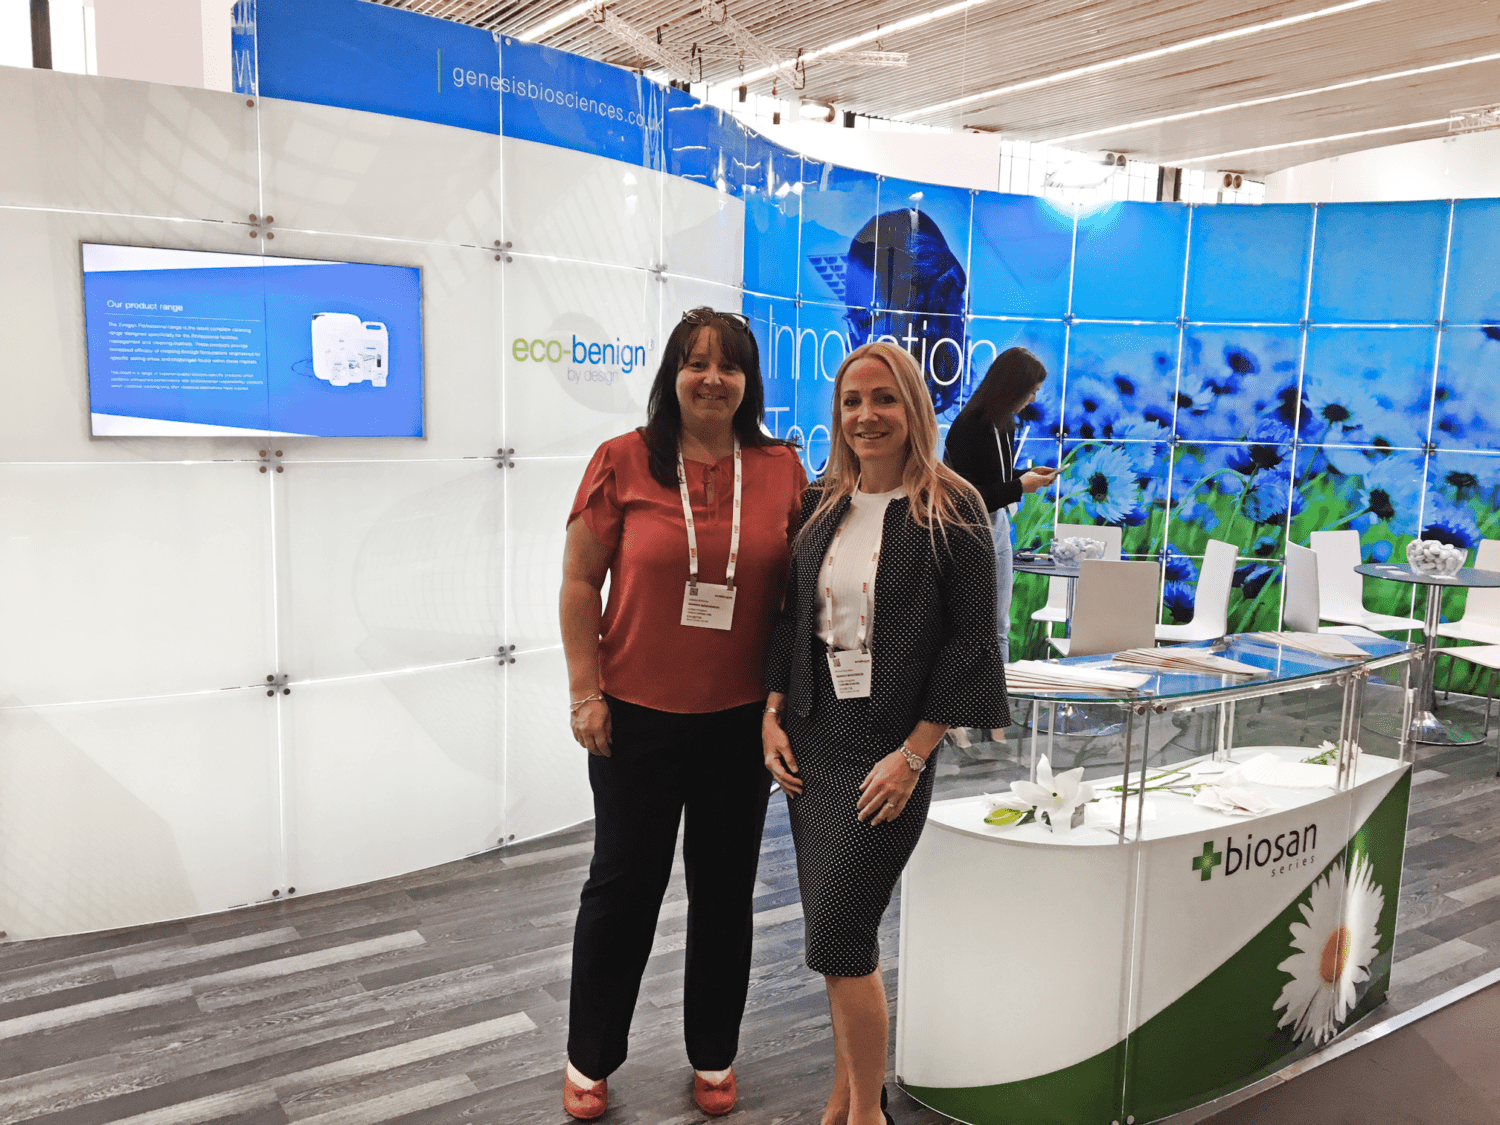 Genesis Biosciences at the ISSA tradeshow 2018 in Amsterdam